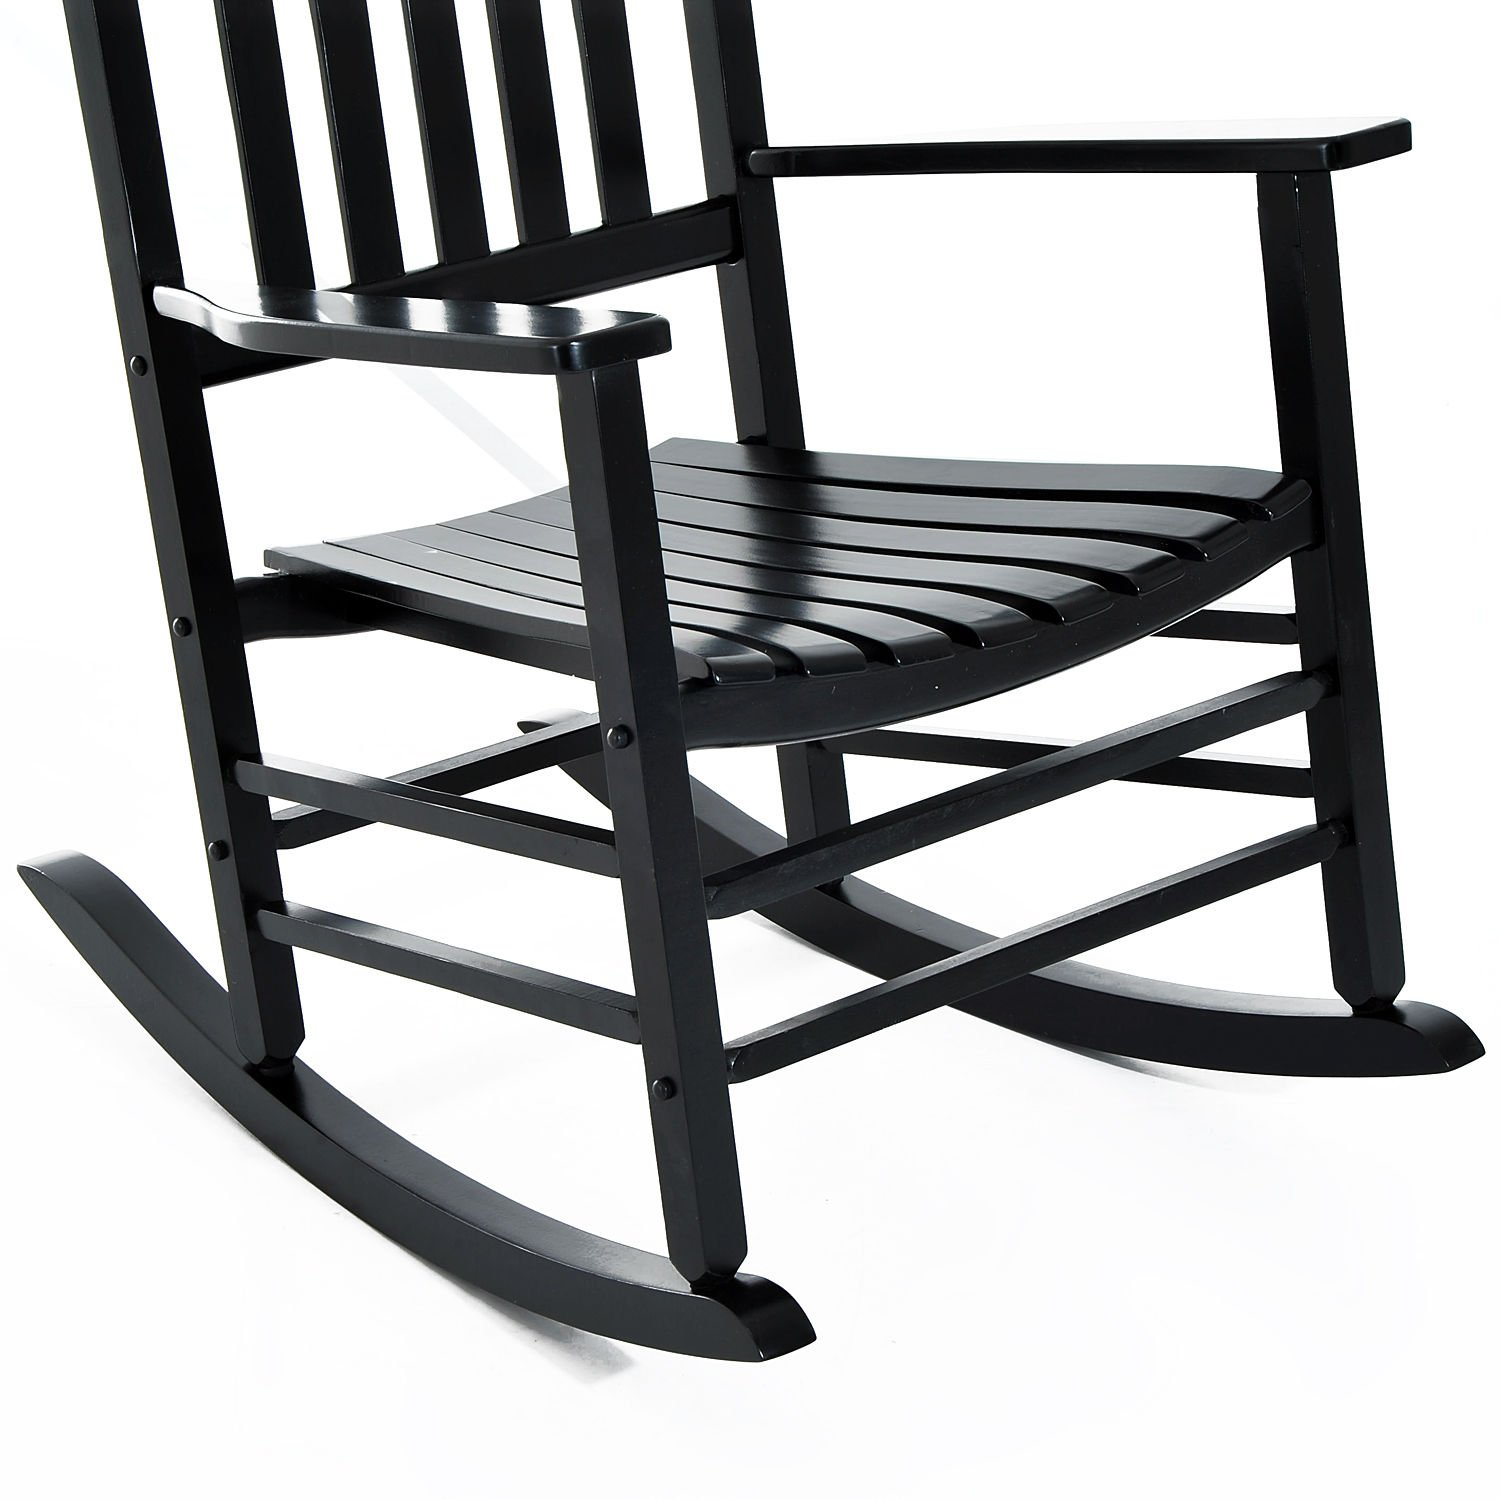 Outsunny Porch Rocking Chair - Outdoor Patio Wooden Rocker - Black by Outsunny (Image #5)